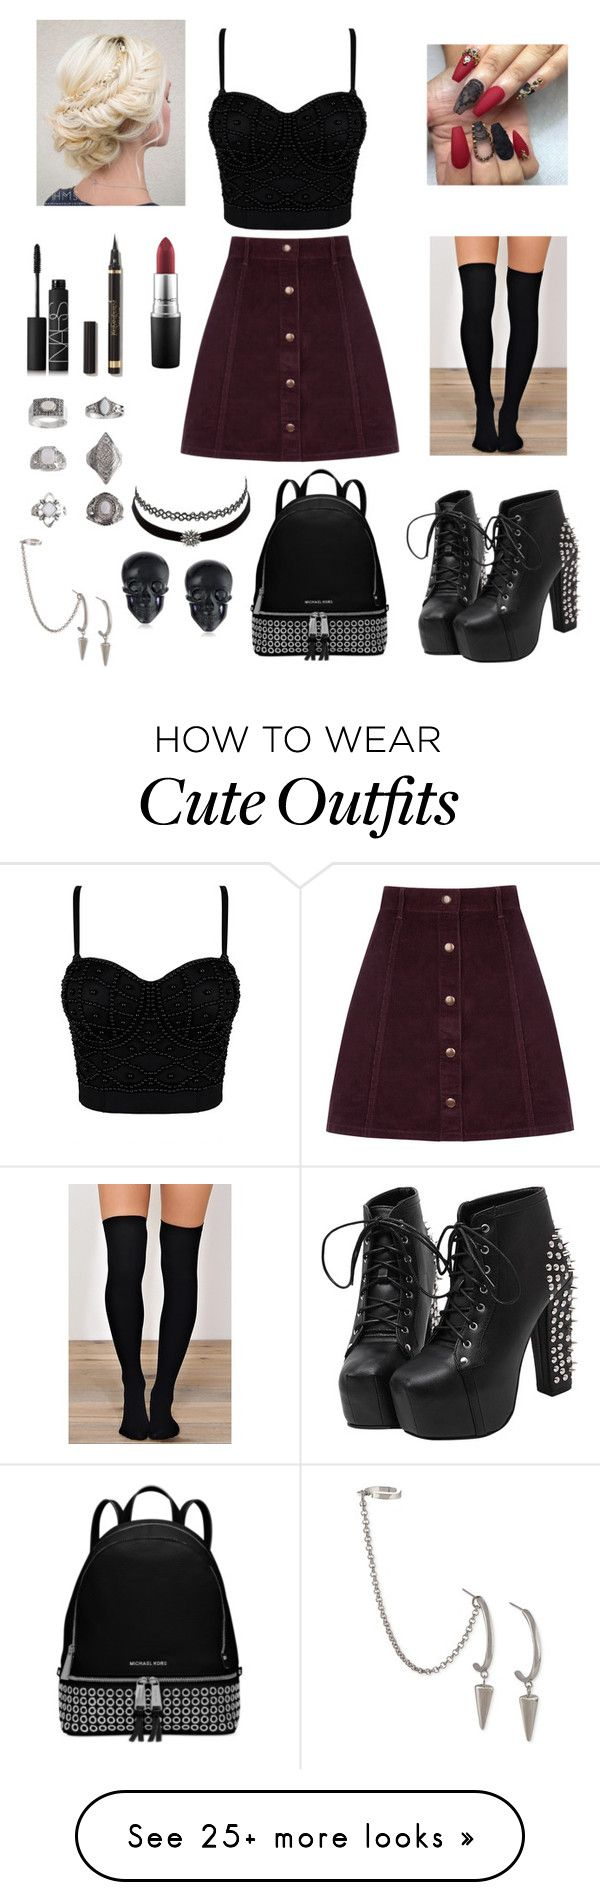 BlackRed Miniskirt Outfit by marieantionette1 on Polyvore featuring Oasis, MAC Cosmetics, NARS Cosmetics, Charlotte Russe, French Connection, Topshop, Michael Kors and Tarina Tarantino